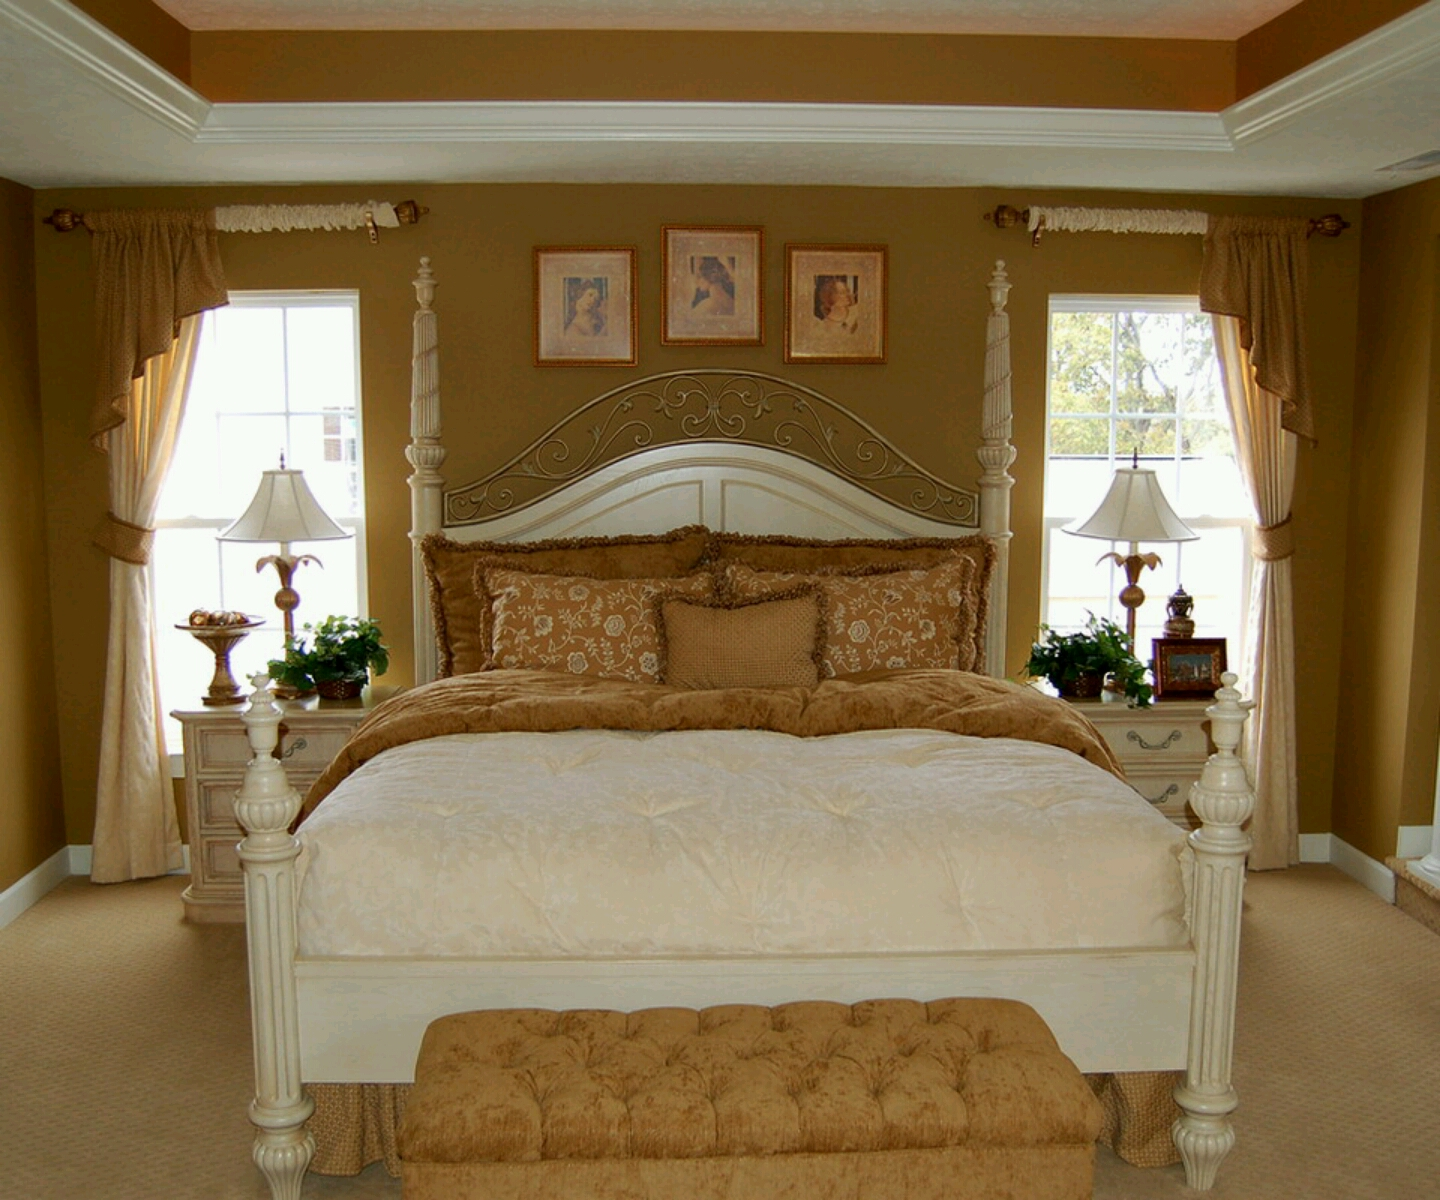 New Furniture Home: Modern Beautiful Bed Designs